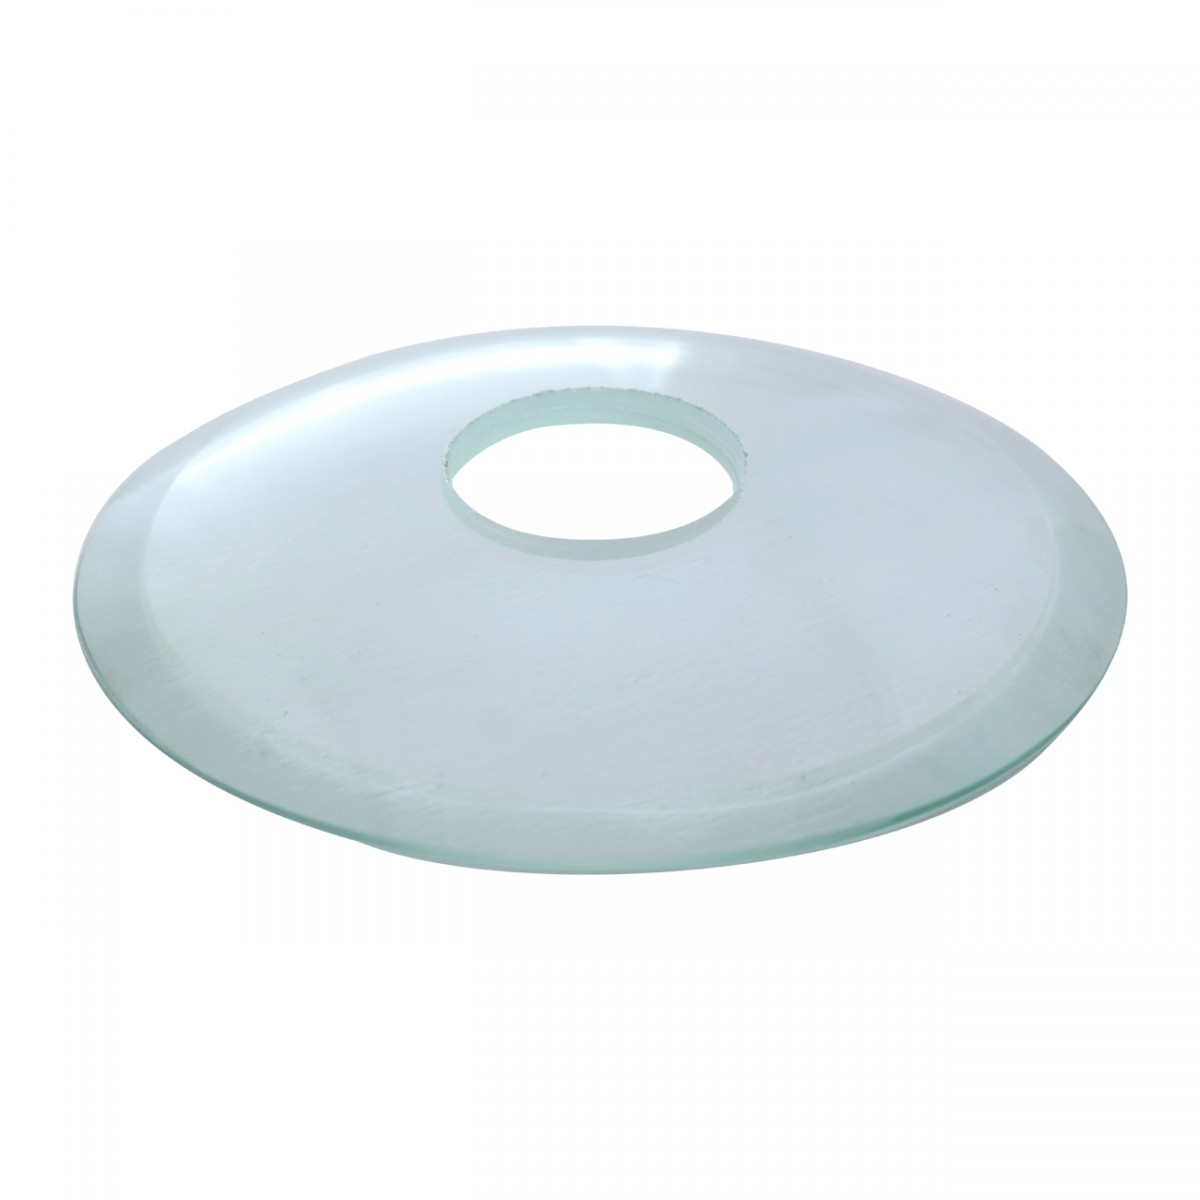 Replacement Waterfall Faucet Clear Glass Disc Plate